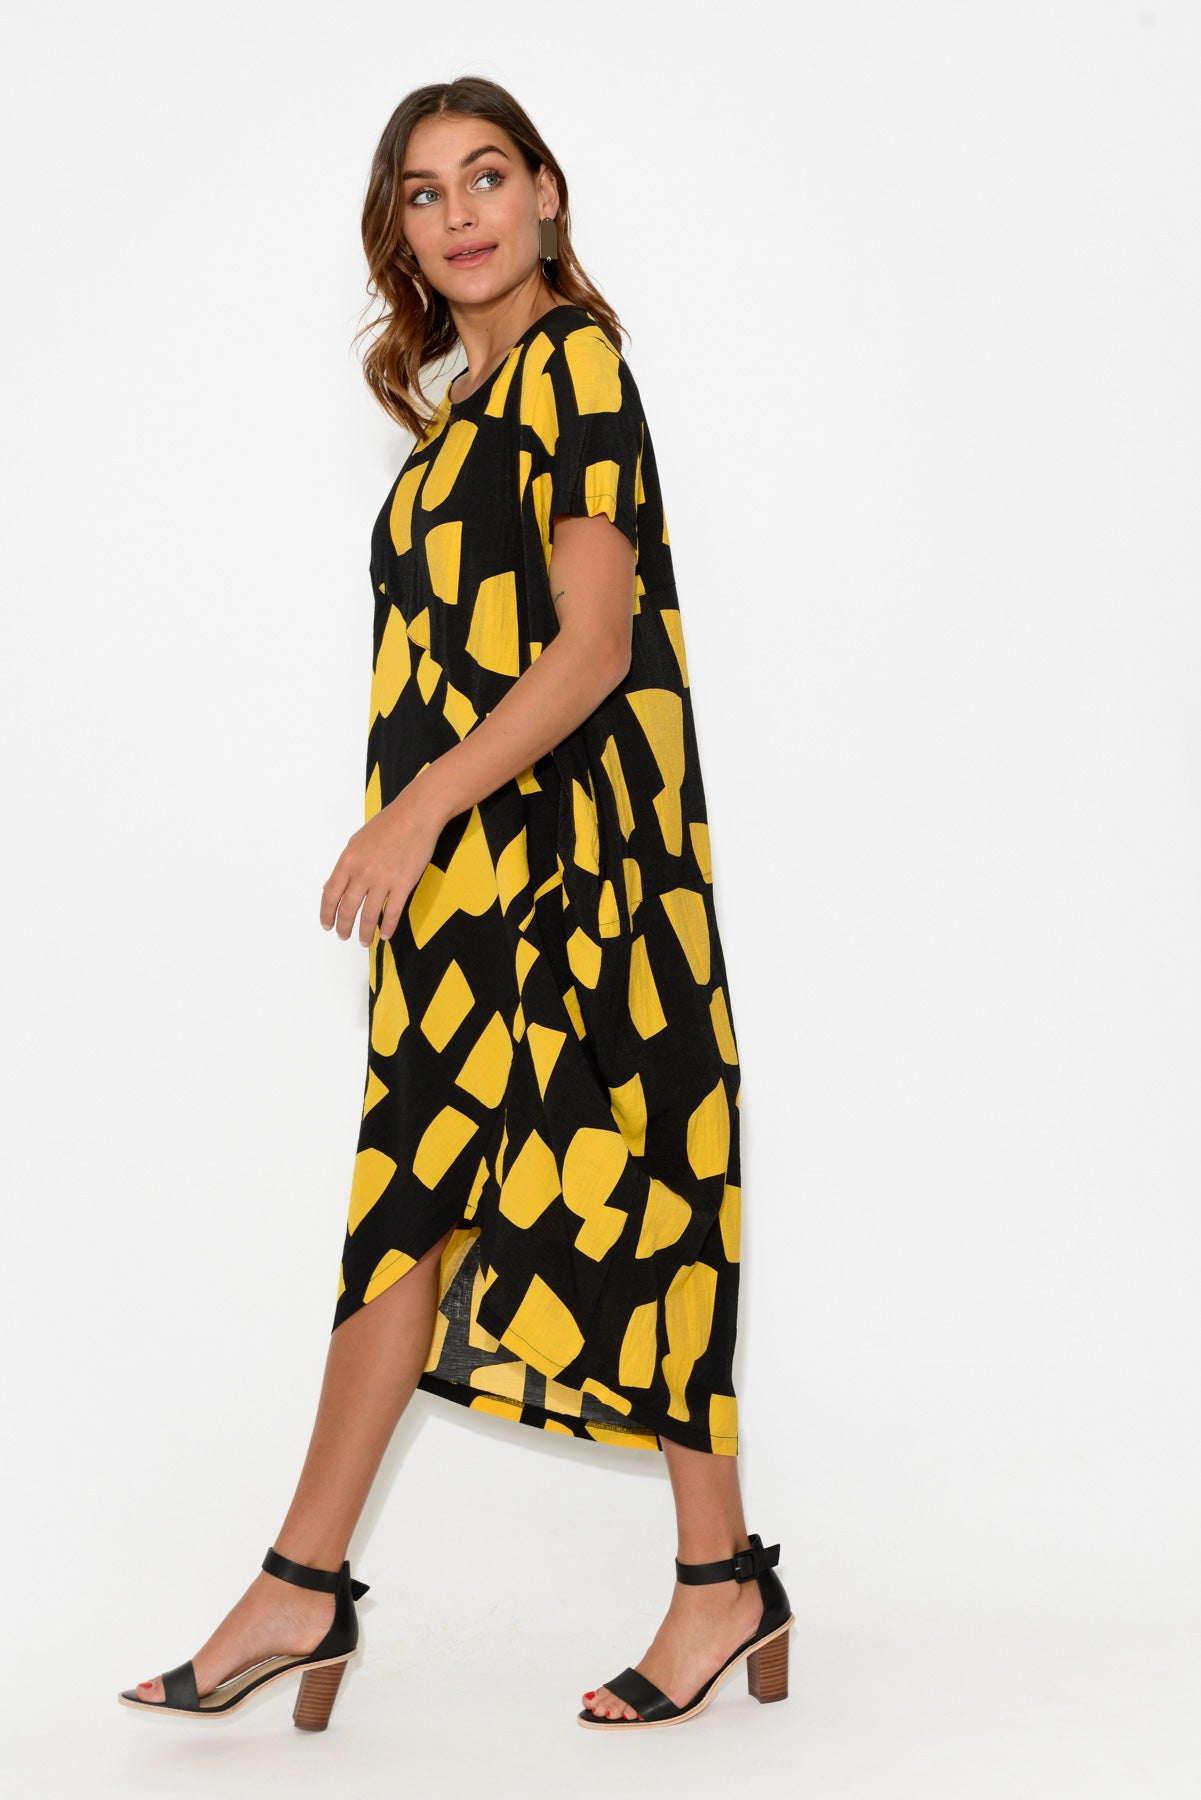 Marlow Yellow Block Midi Dress - Blue Bungalow